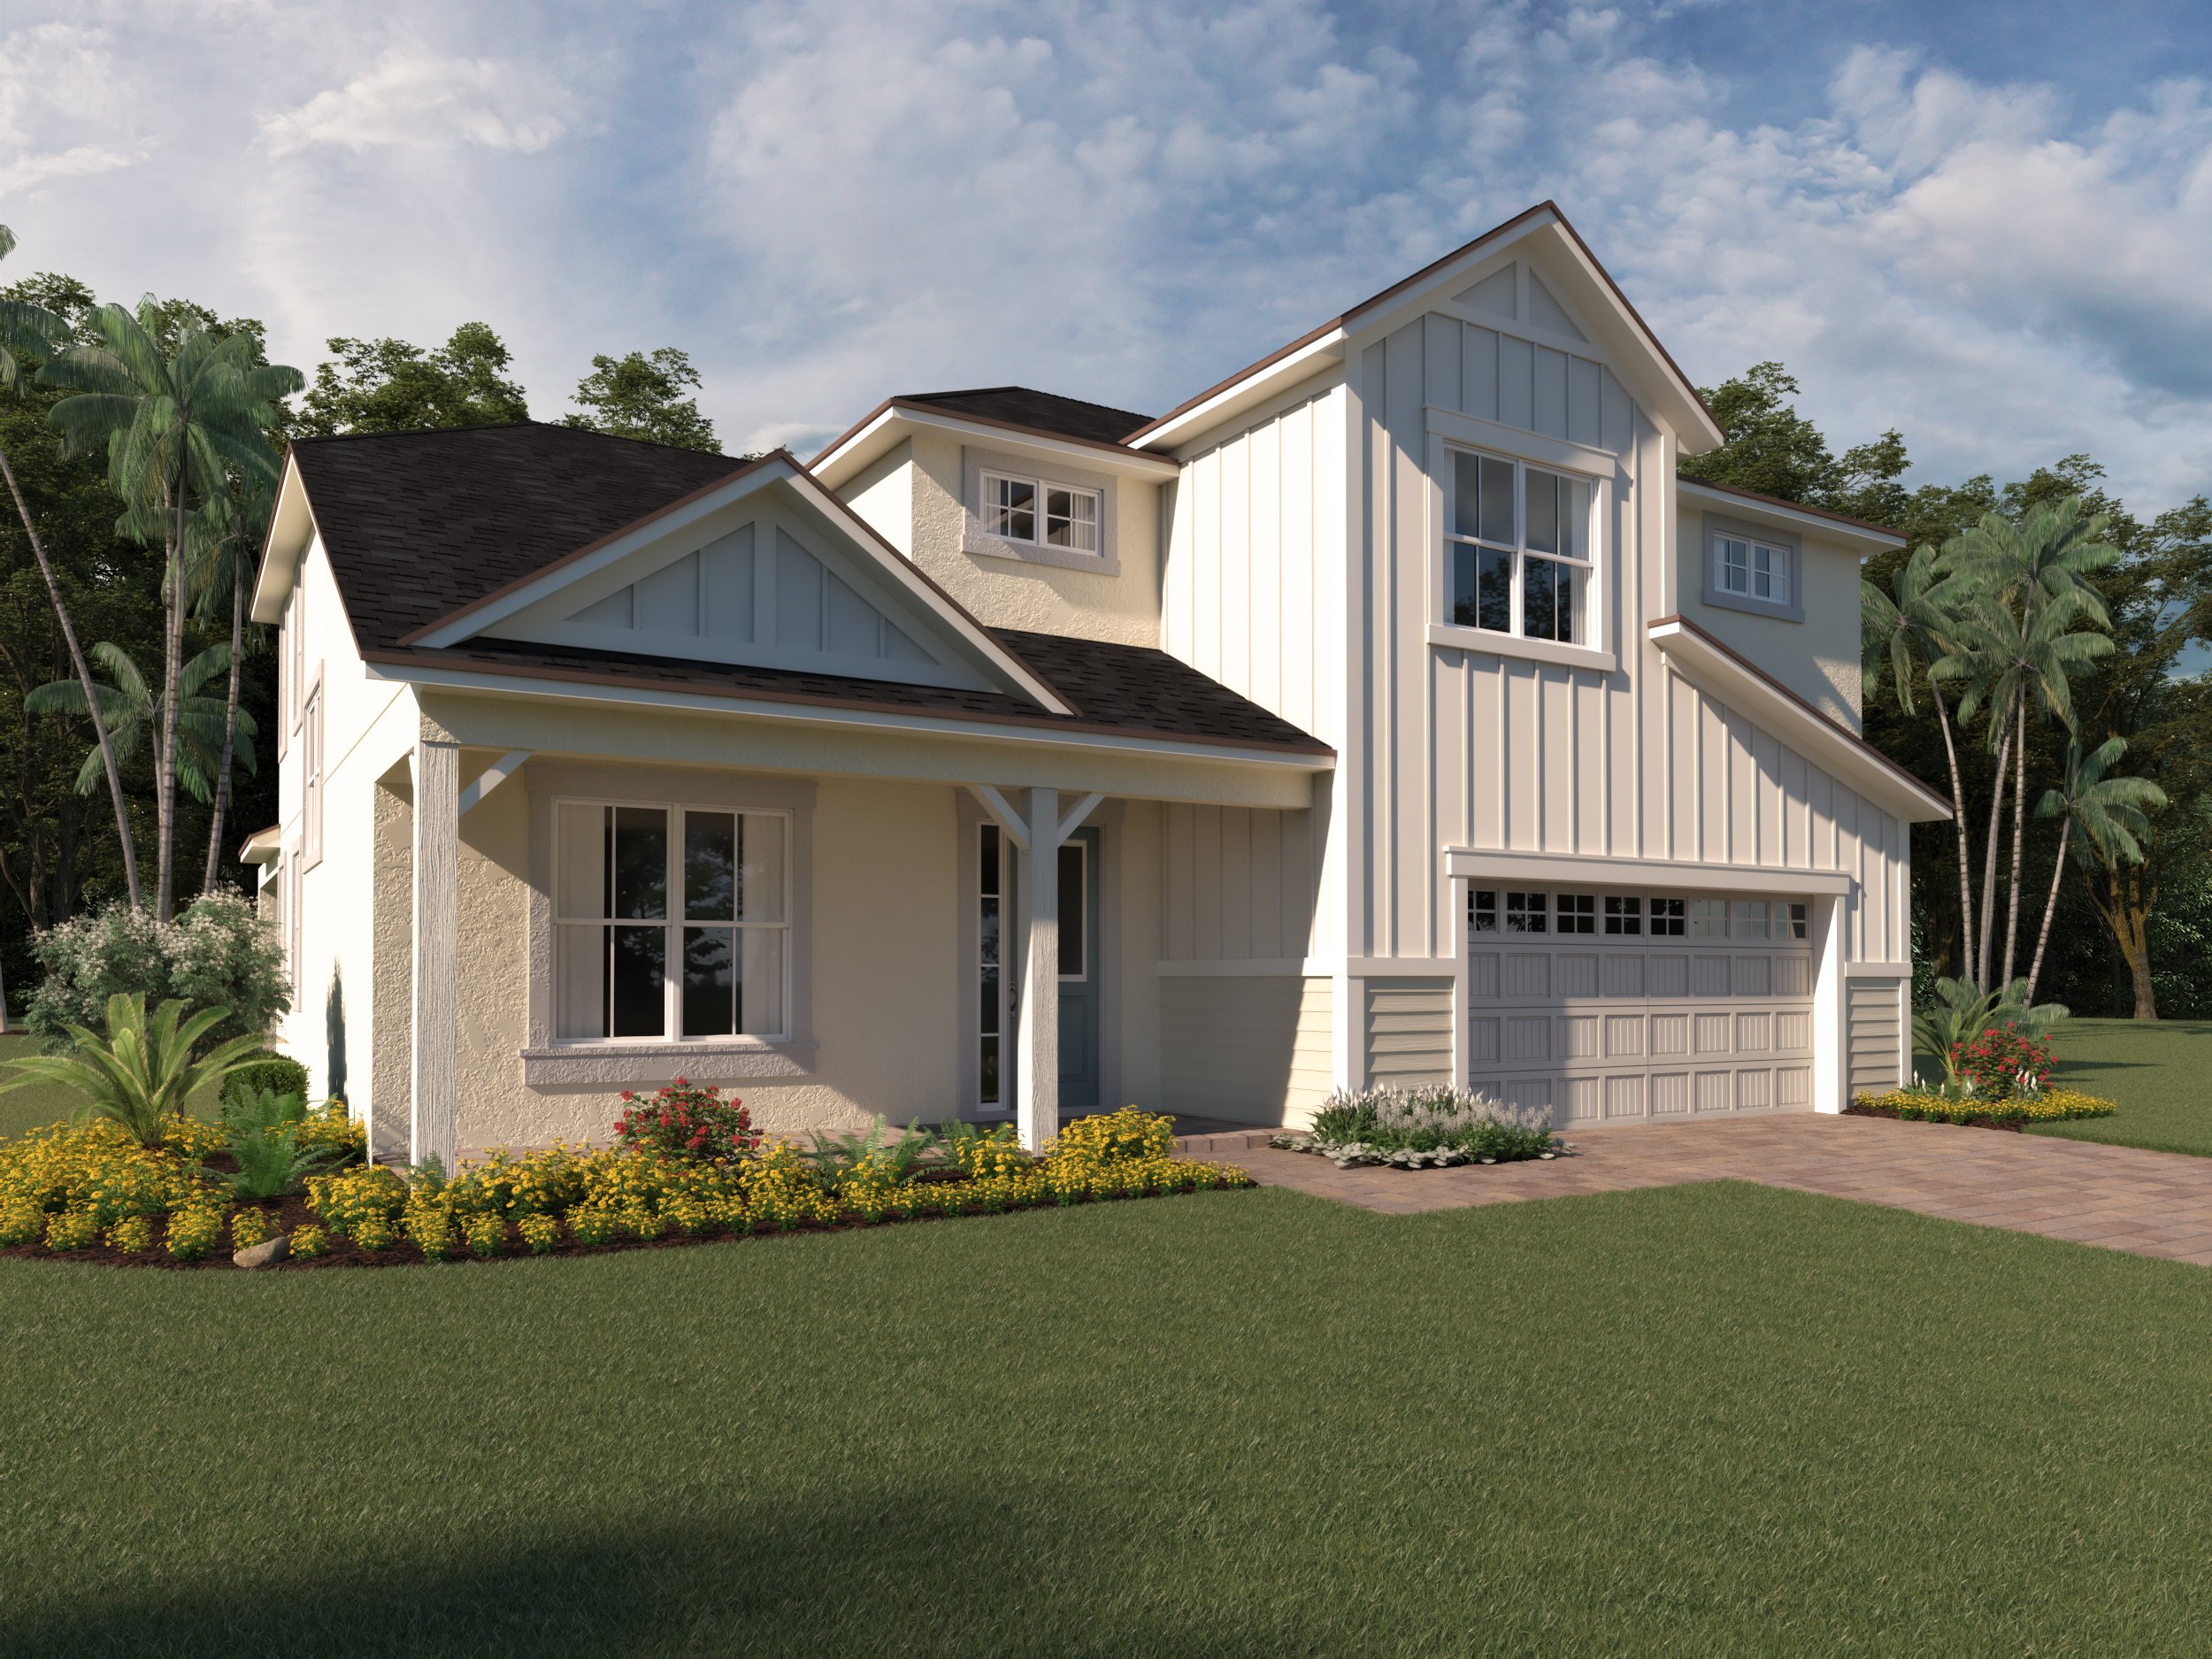 Kensington Plan Elevation Front at Preserve at Crown Point in Ocoee Florida by Mattamy Homes